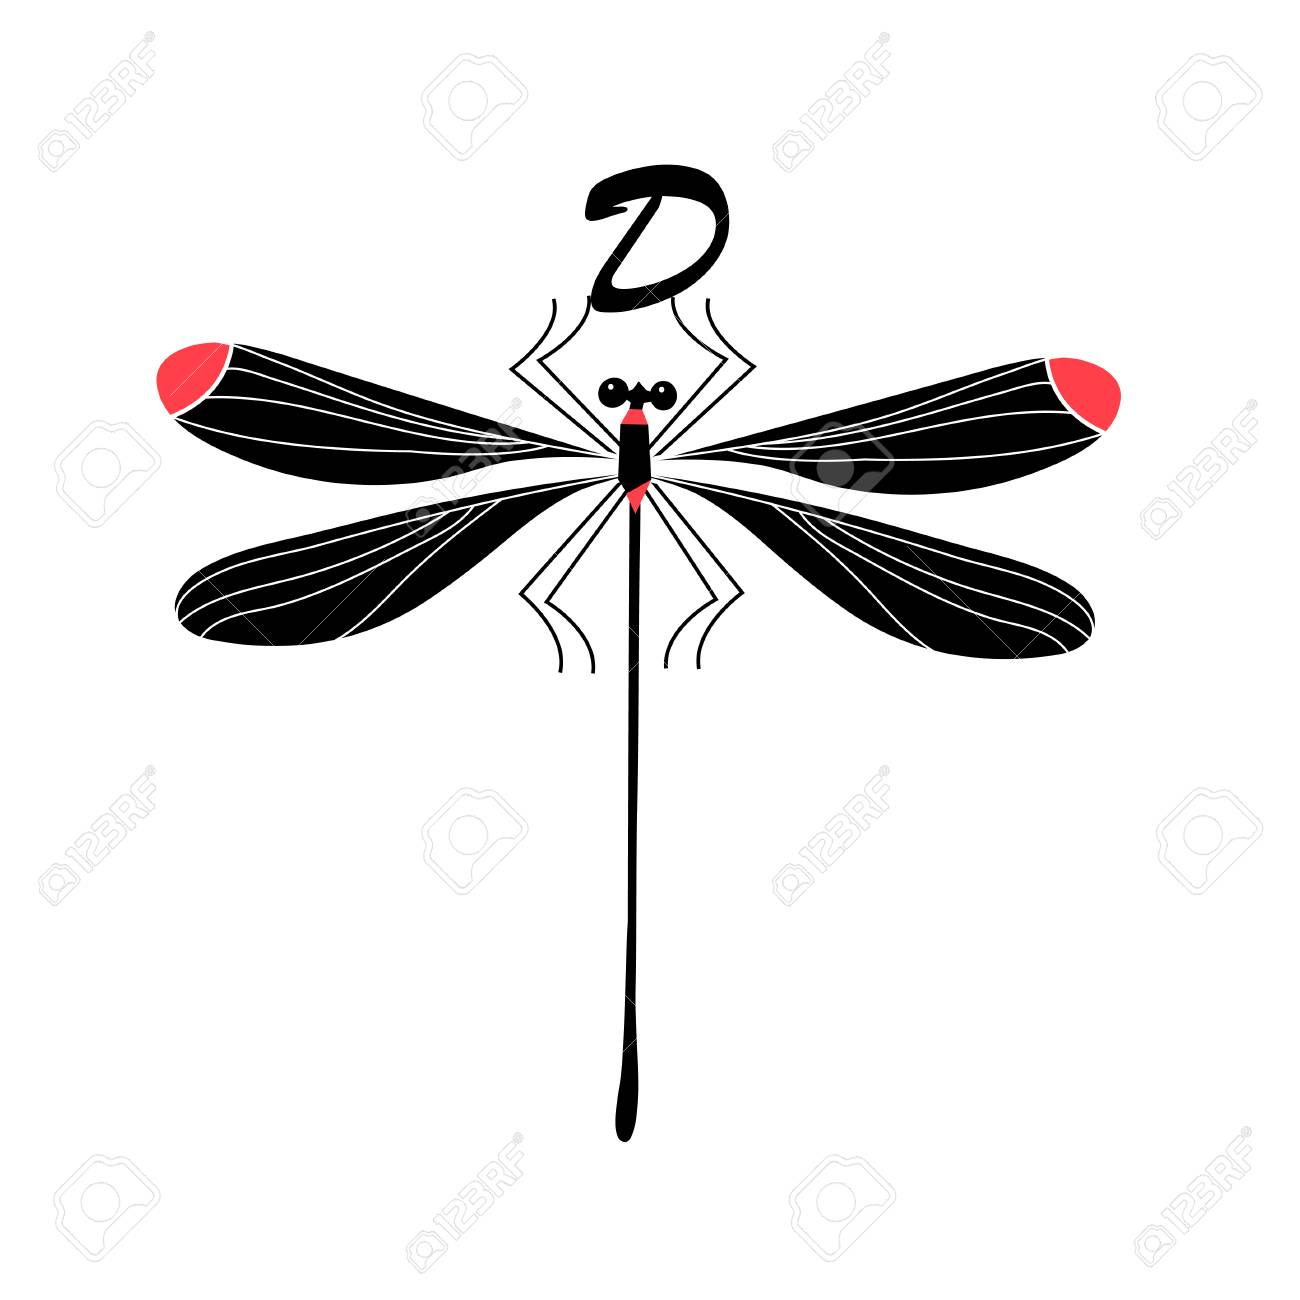 vector silhouette of a dragonfly on white background royalty free